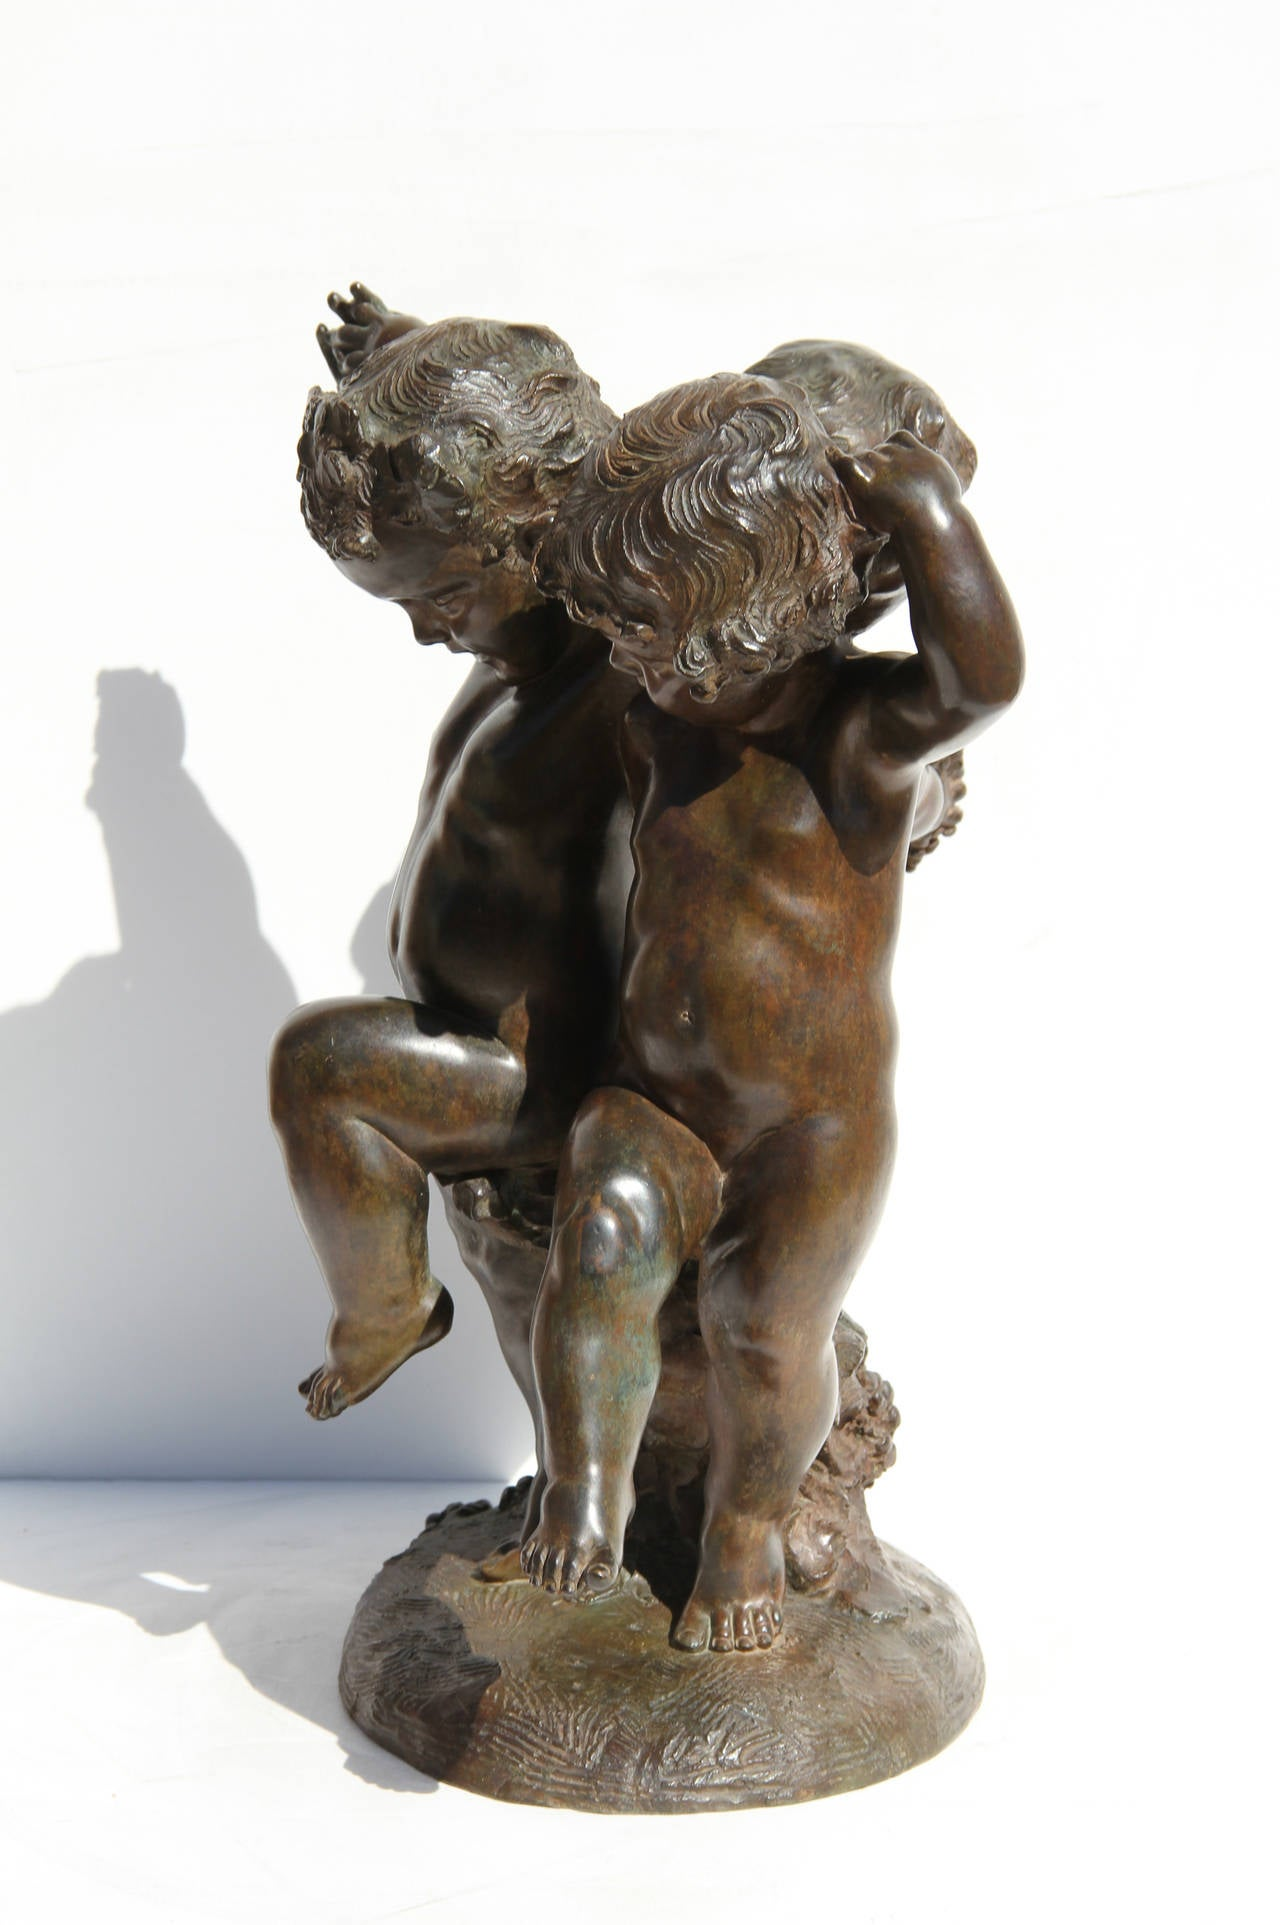 This Bronze sculpture, by the French artist Affortunato Gory, is a beautiful moment of three putti joyously dancing together.  Their arms are joined as they dance and hold grapes.  Signature inscribed.